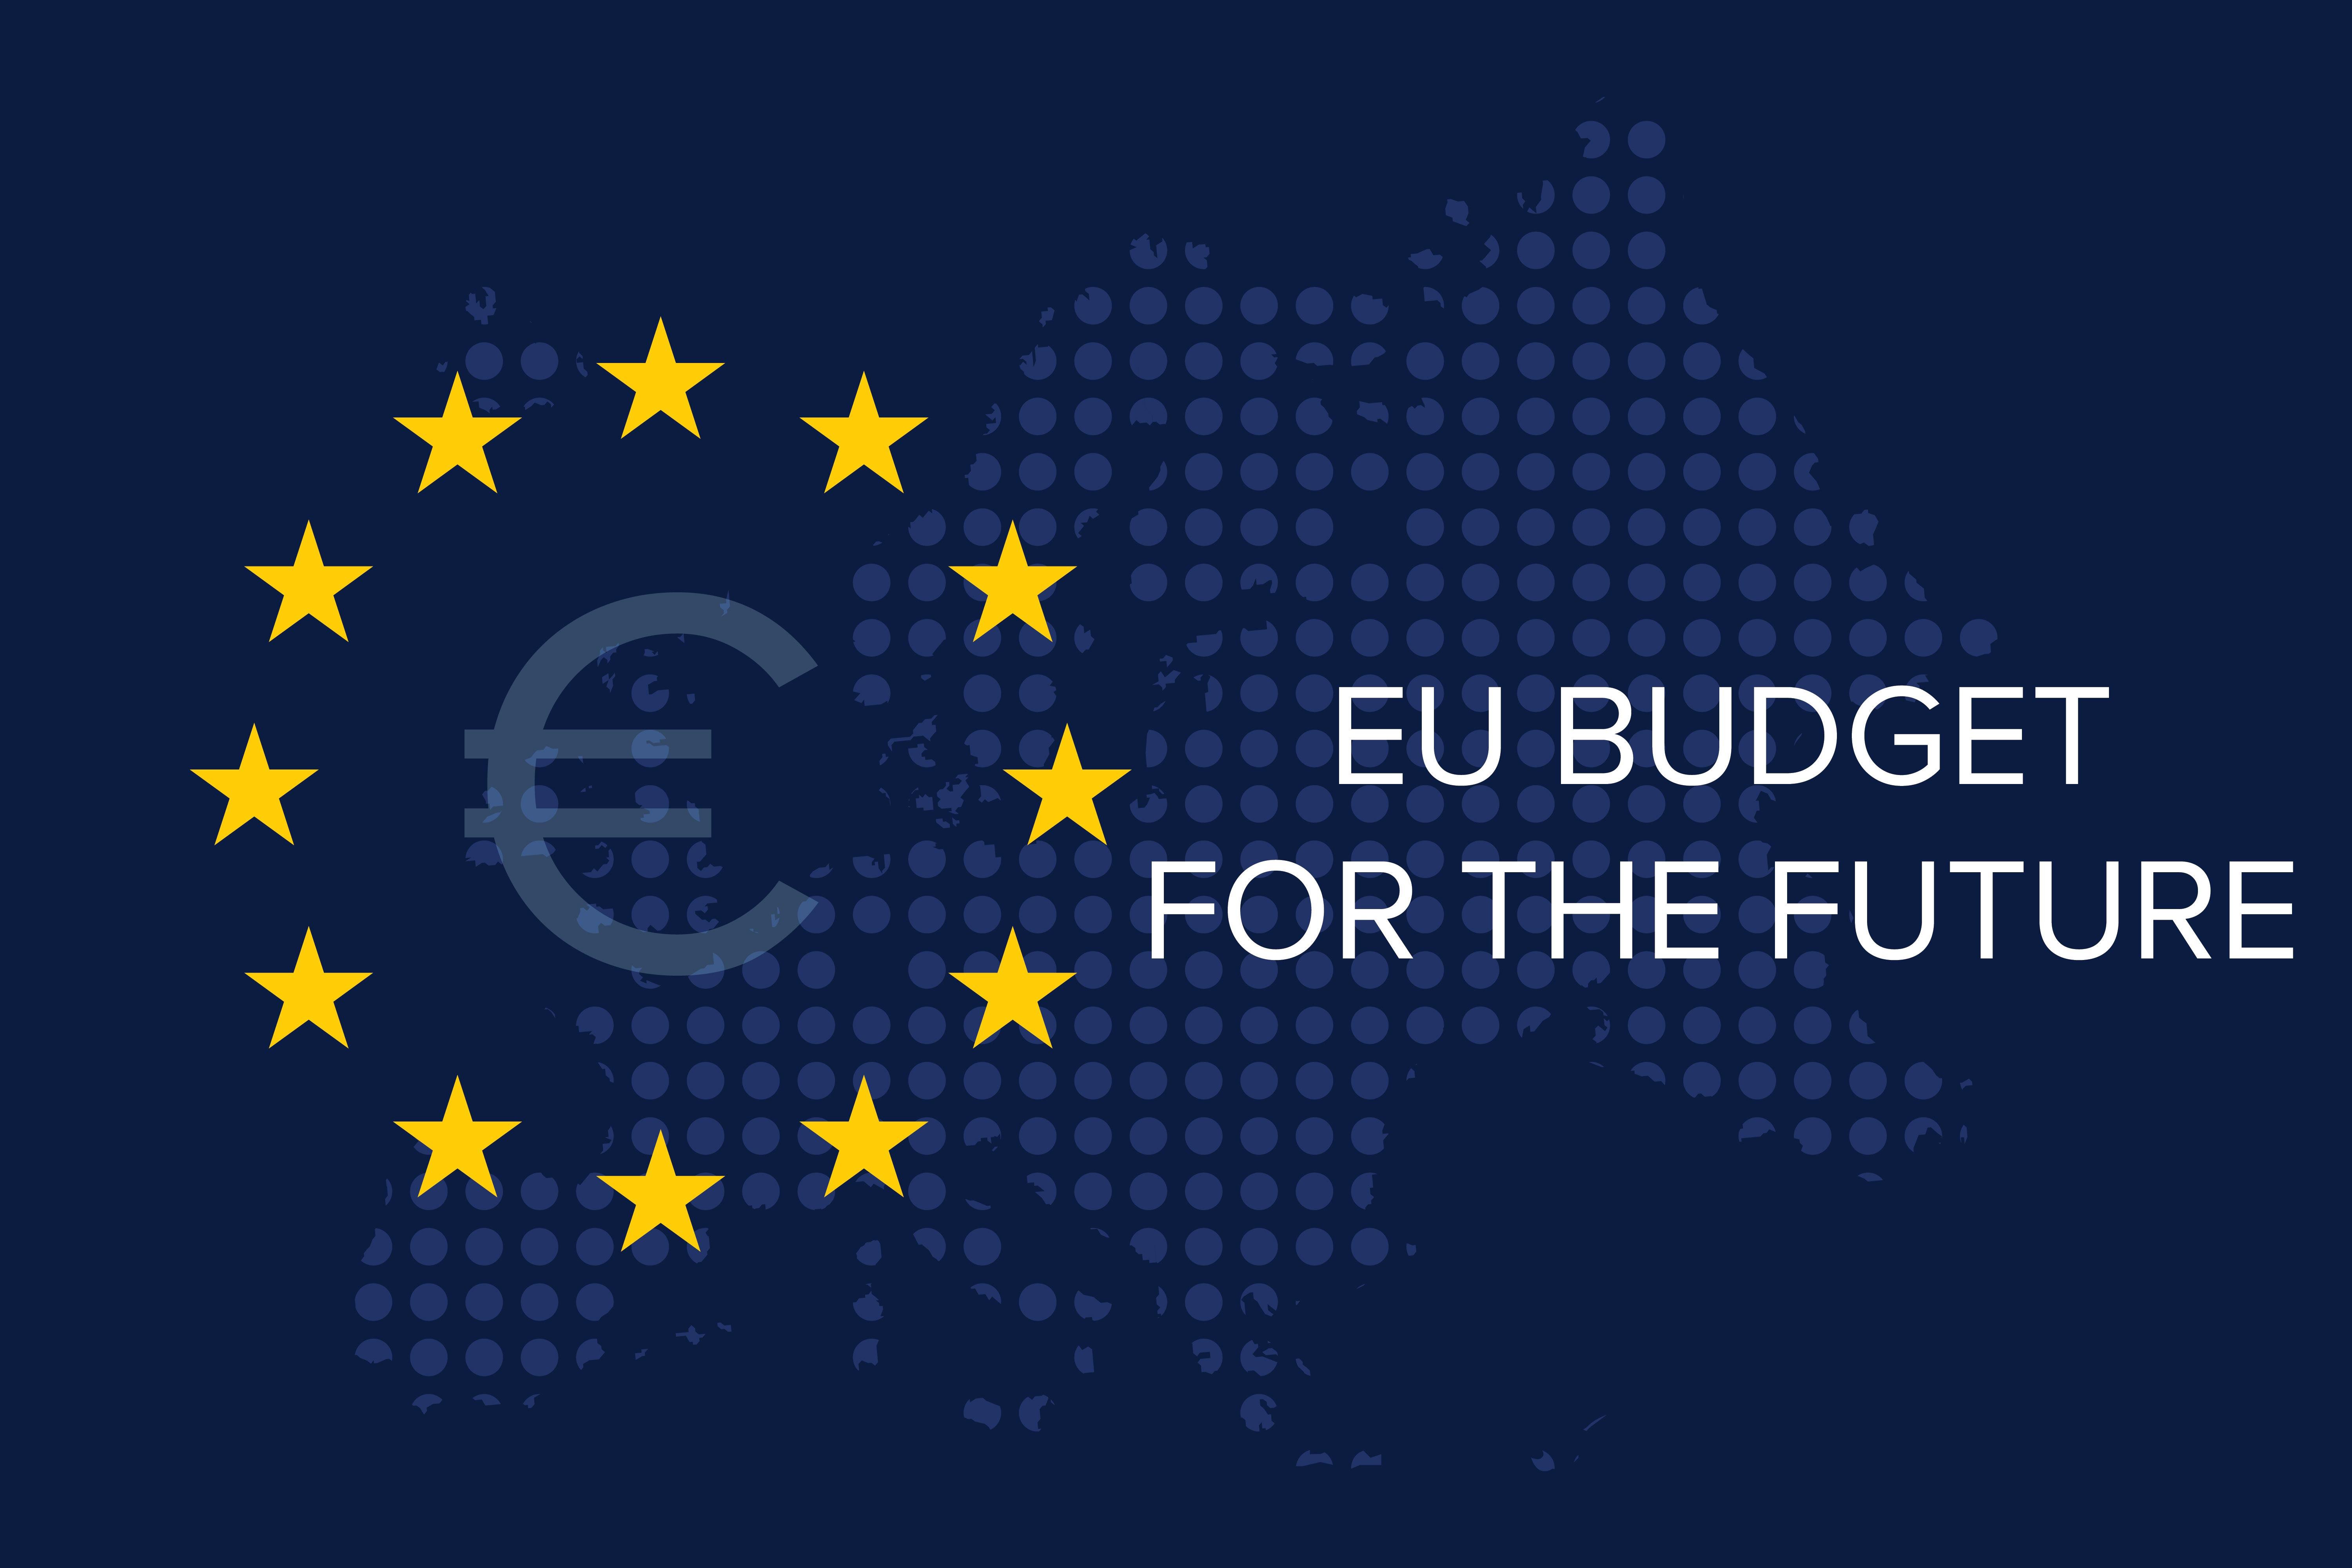 € sign in EU stars and words EU BUDGET FOR THE FUTURE